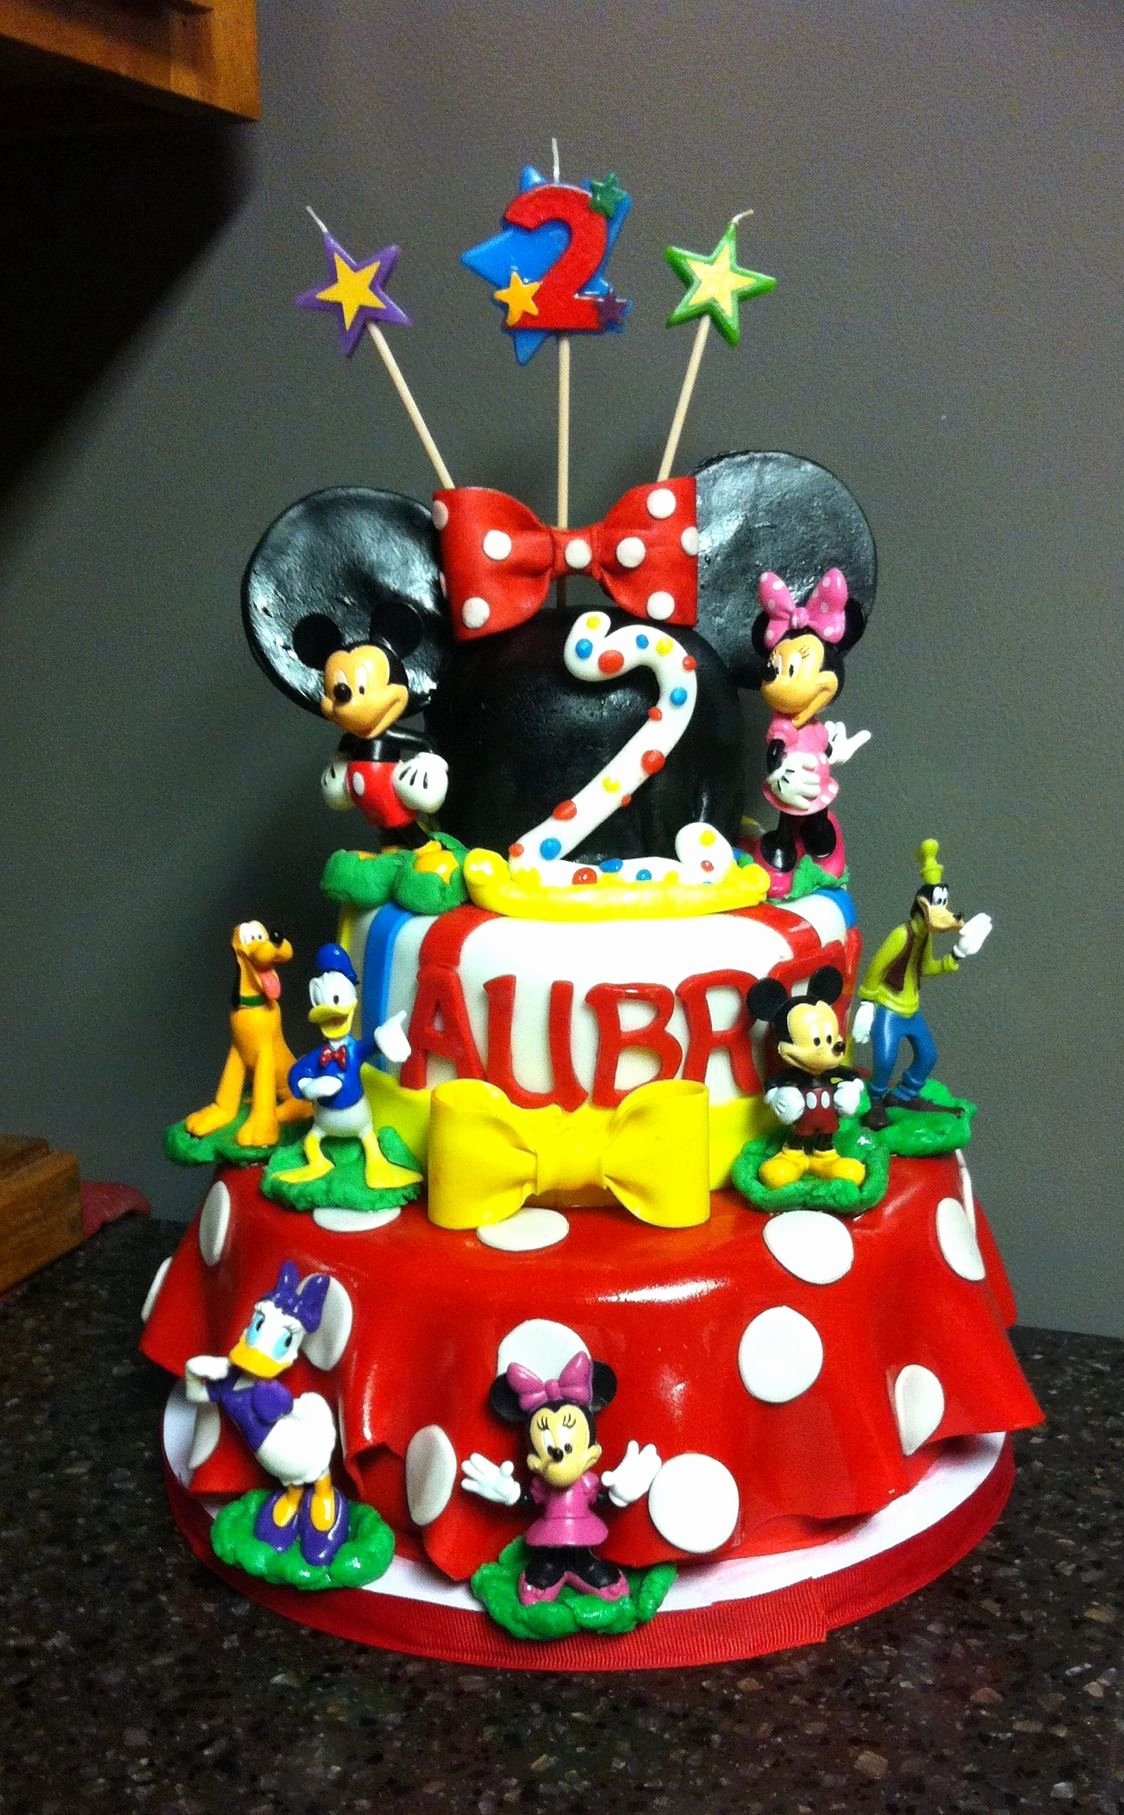 Mickey Mouse Clubhouse 2nd Birthday Lovely Mickey Mouse Clubhouse Birthday Cake for A 2 Yr Old Little